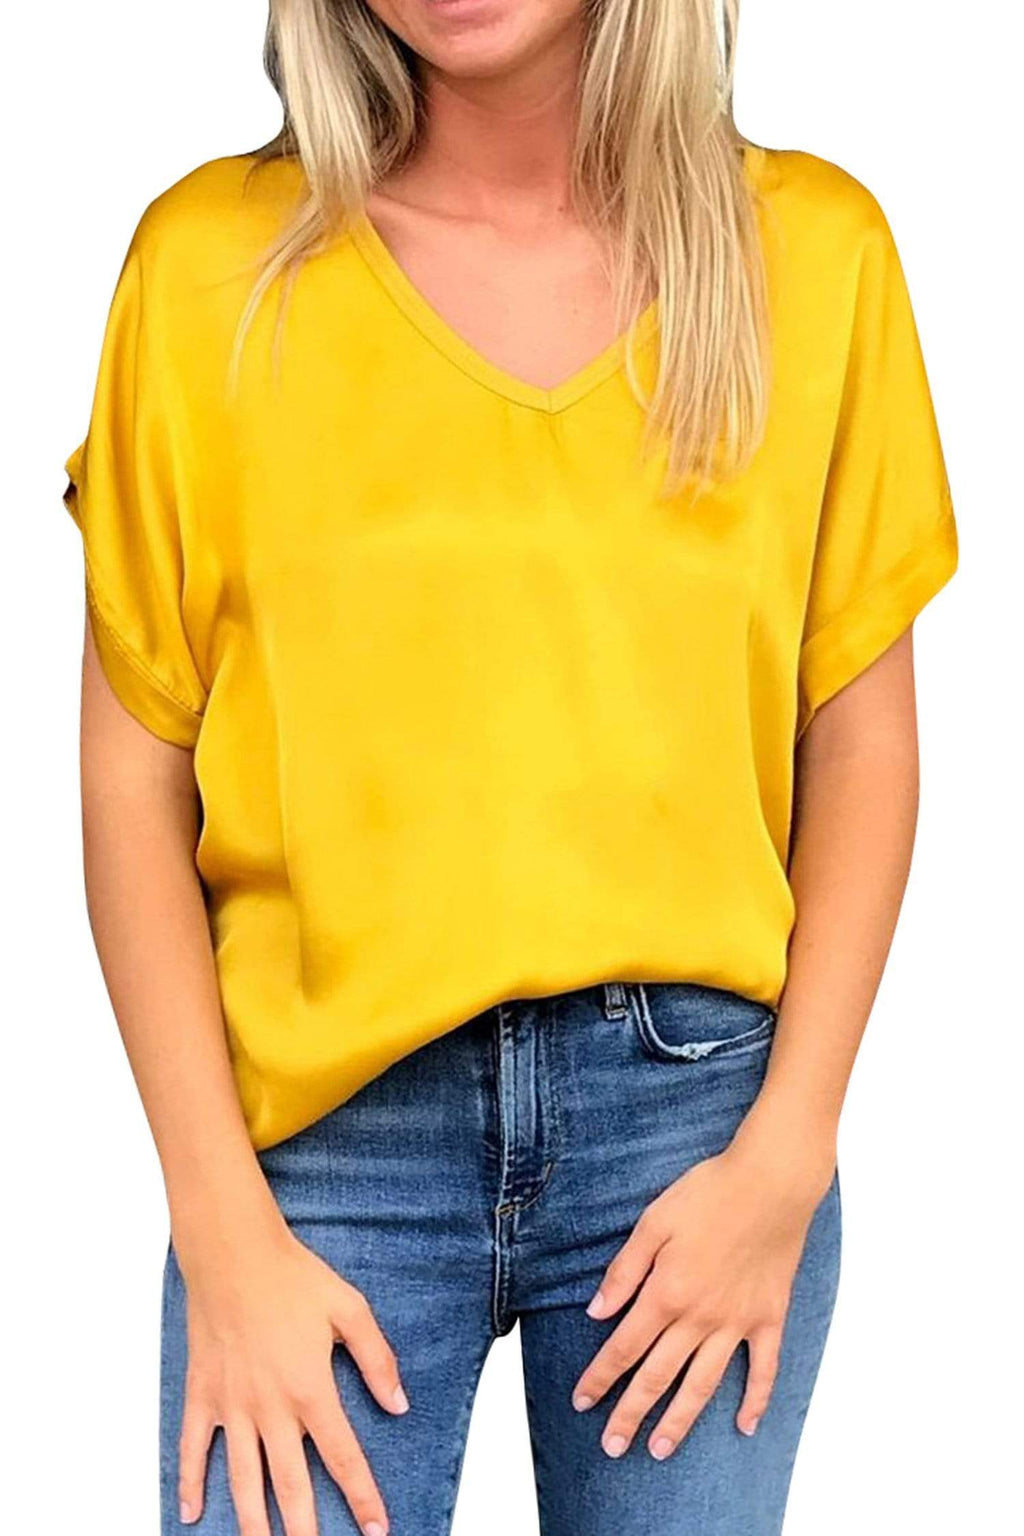 shop-sofia Steph Mustard V-Neck Top Sofia Collections Italian Silk Linen Satin